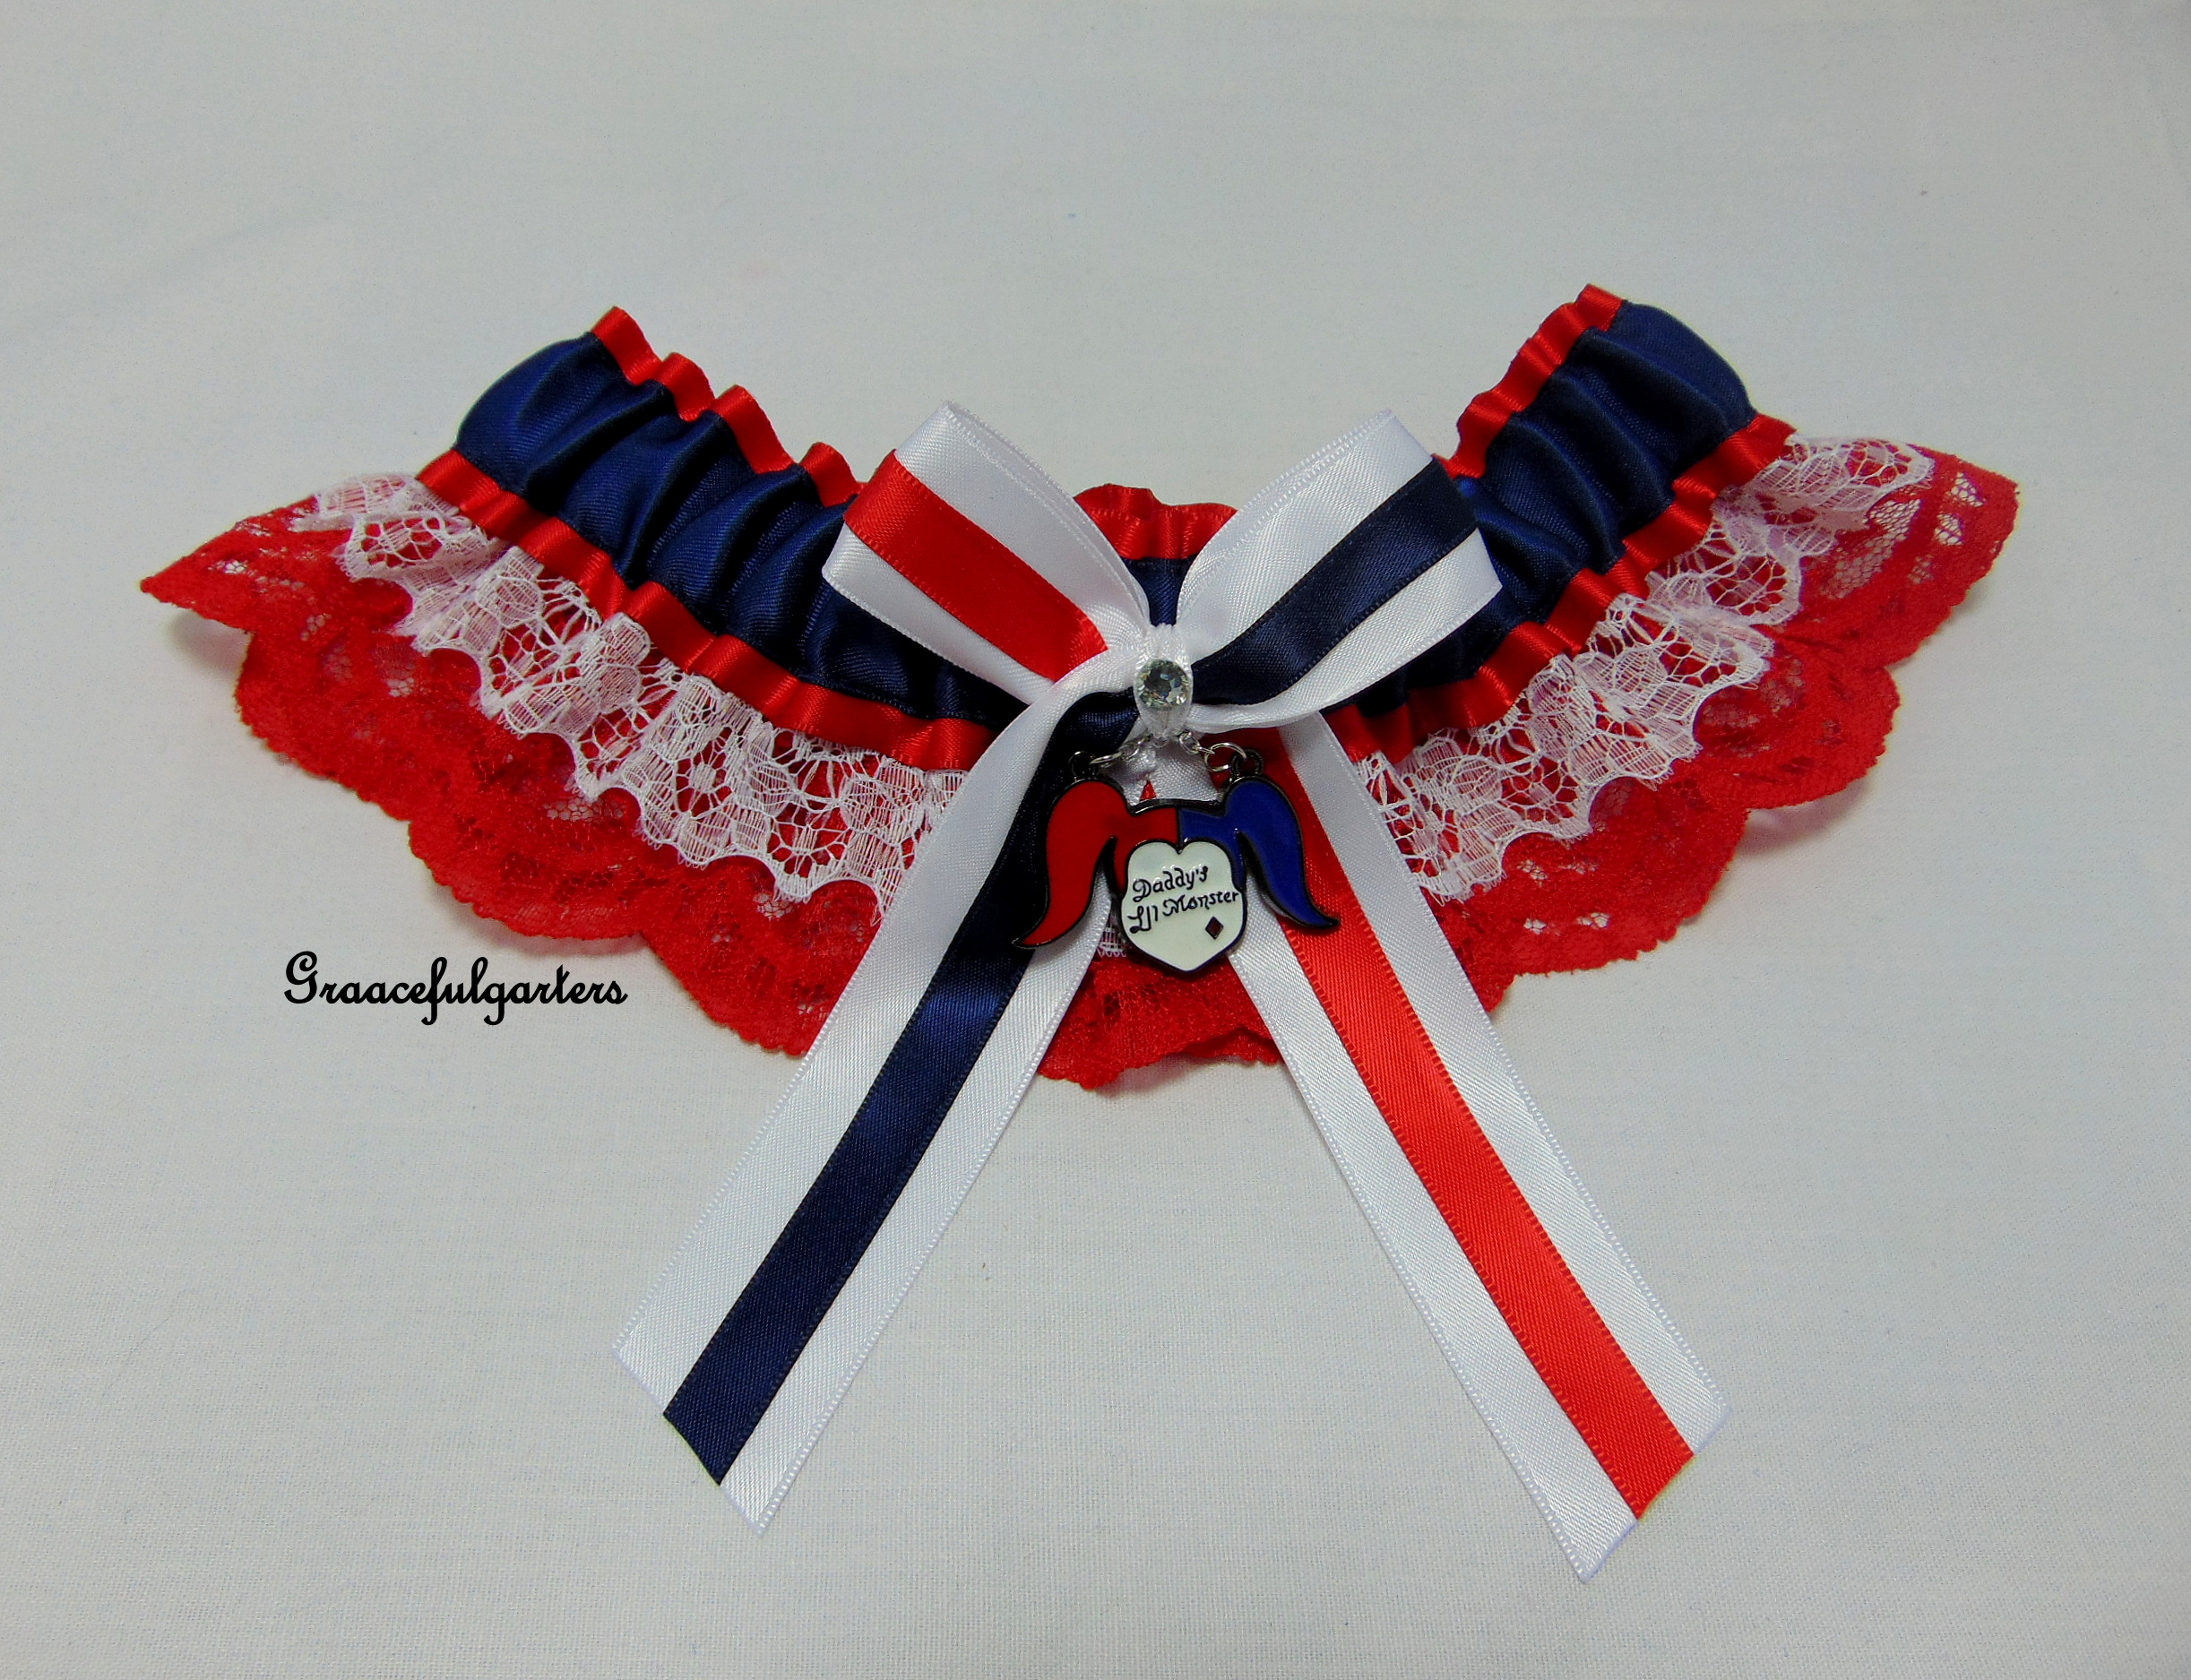 Daddys Lil Monster Harley Quinn Lace Bridal Wedding Garter.